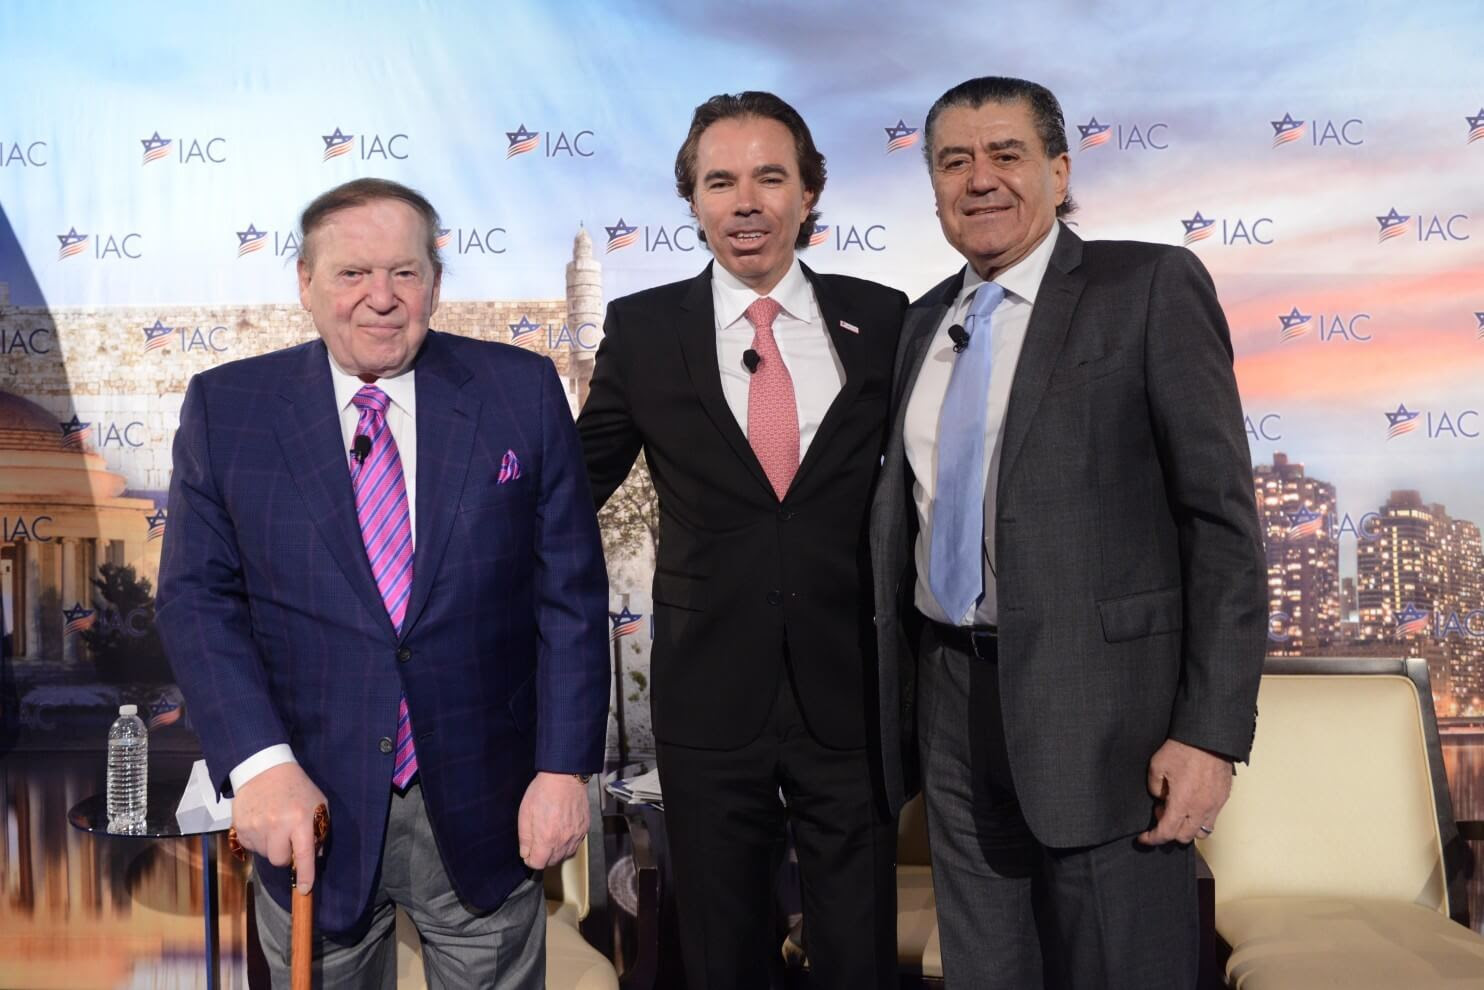 Sheldon Adelson, left, and Haim Saban flank Israeli-America Council Chairman Shawn Evenhaim at the IAC conference in D.C. (Photo: Shahar Azran)